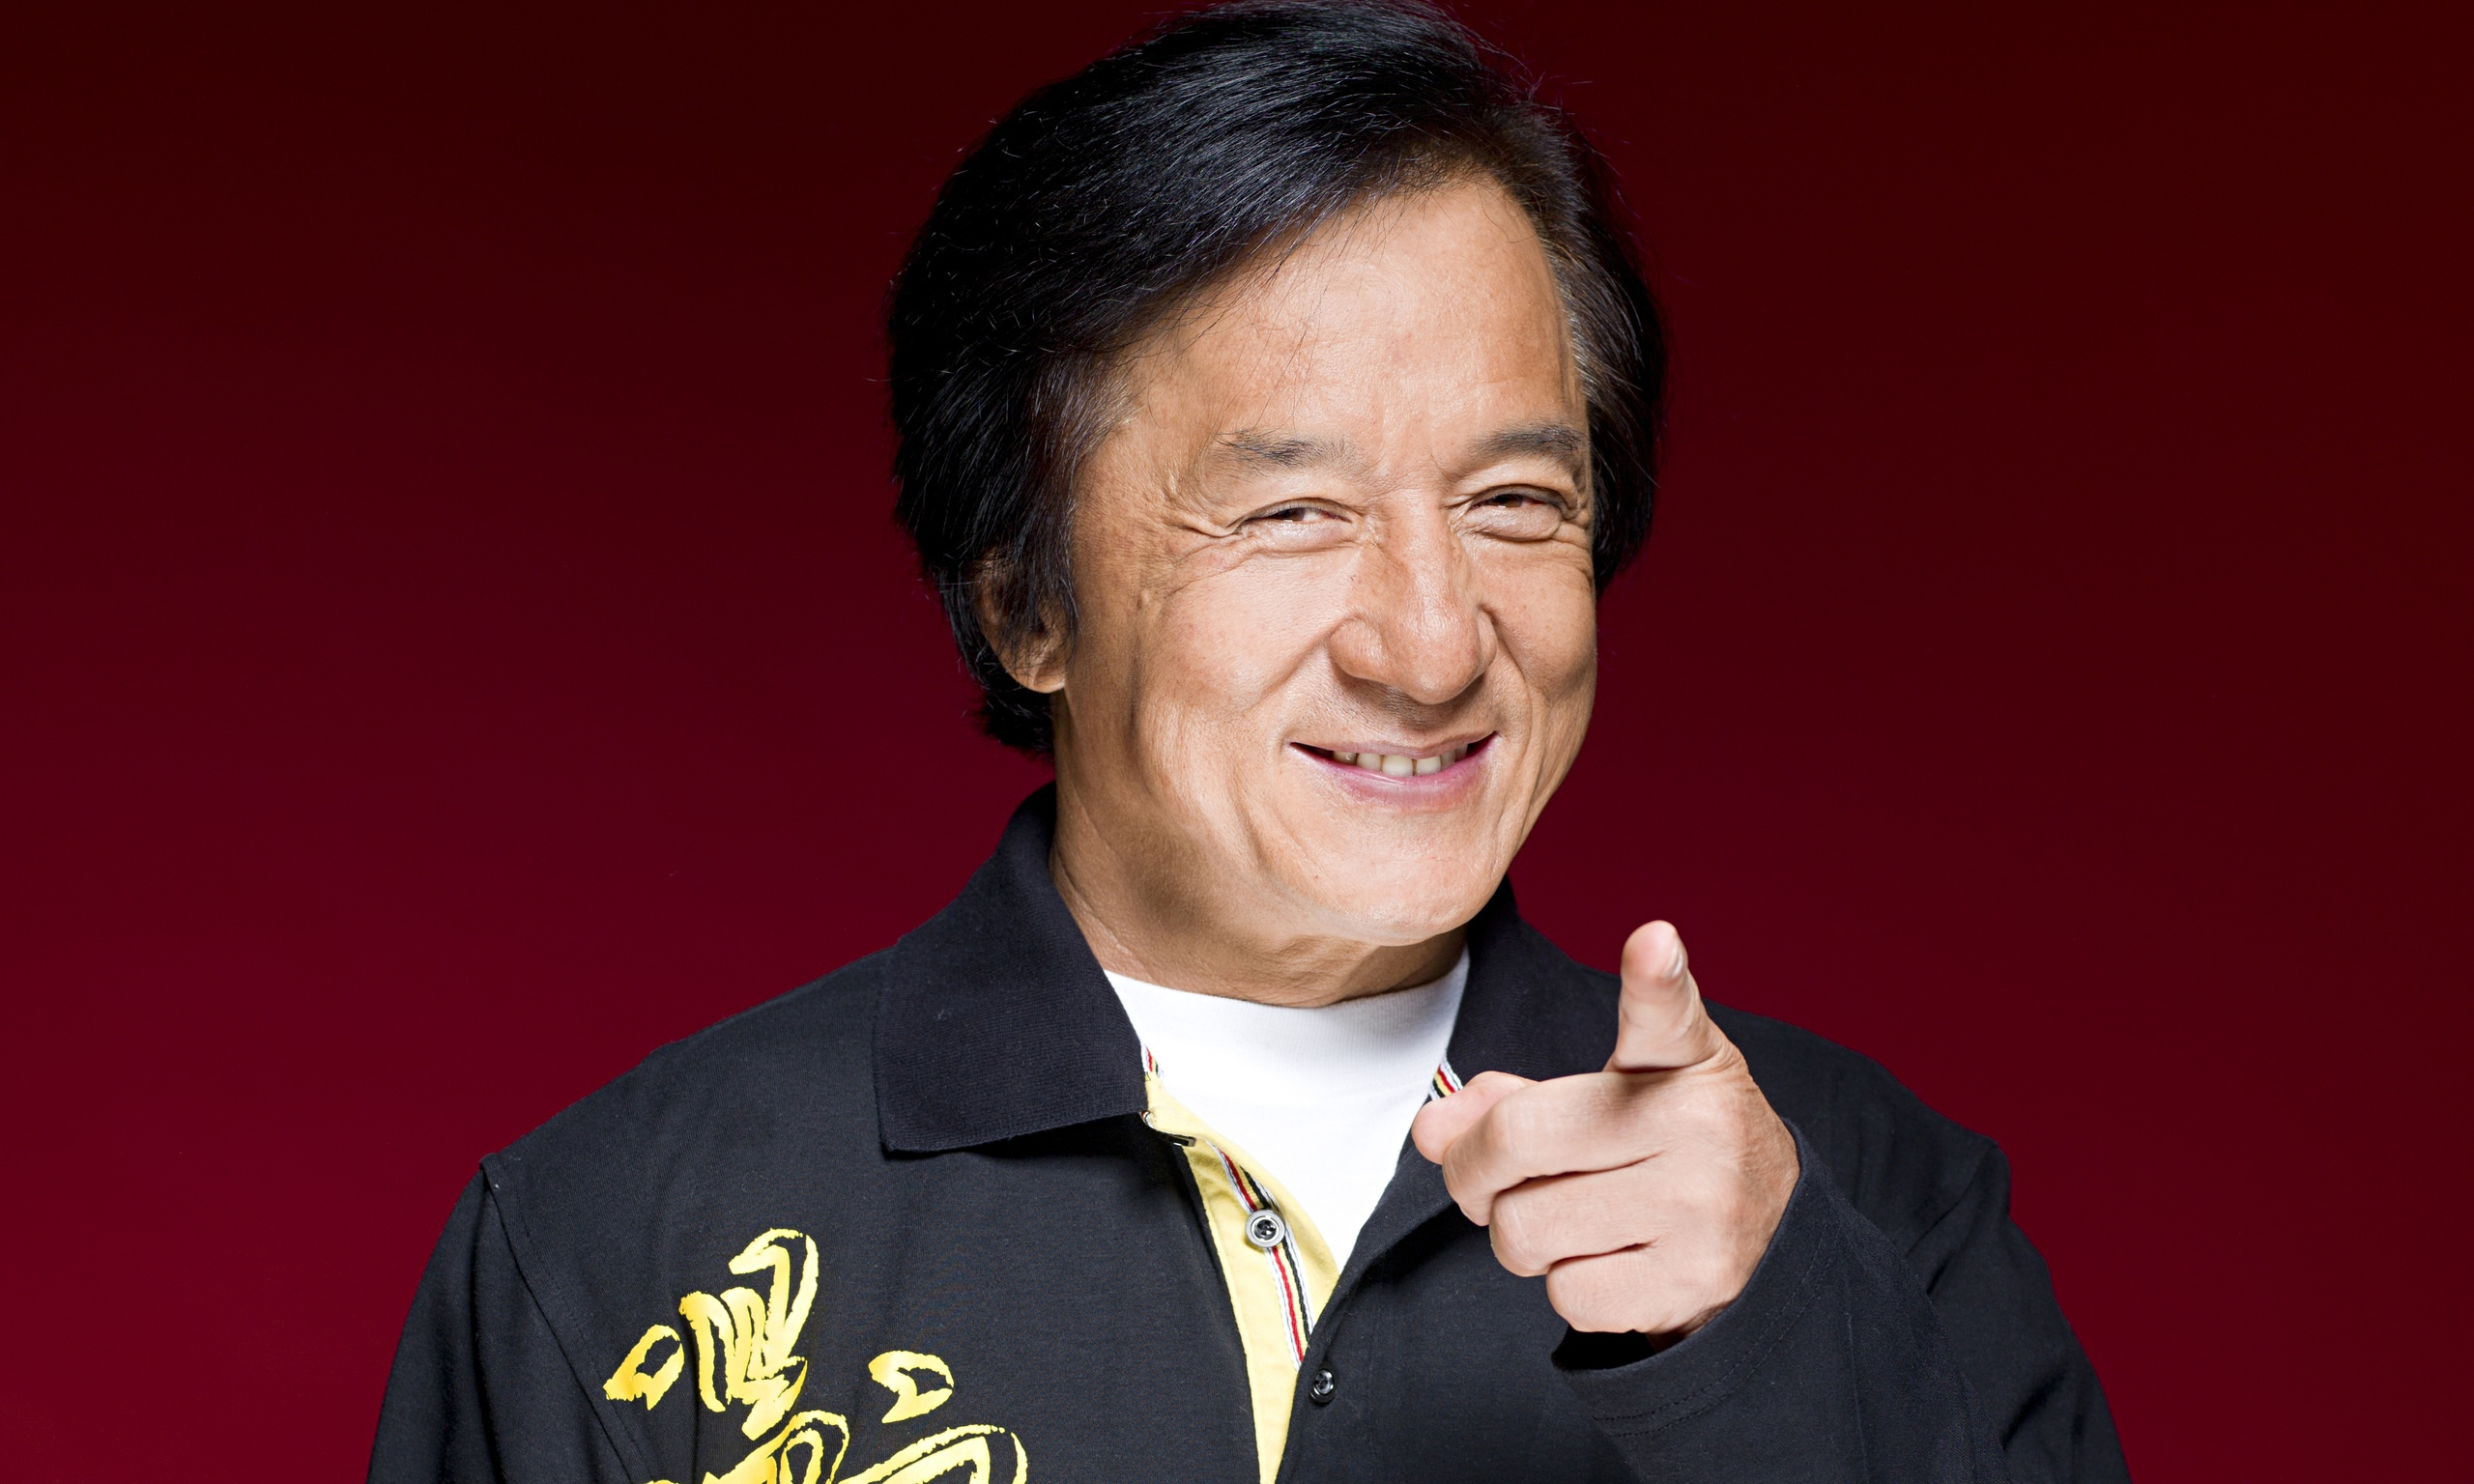 Jackie Chan Hd Wallpaper